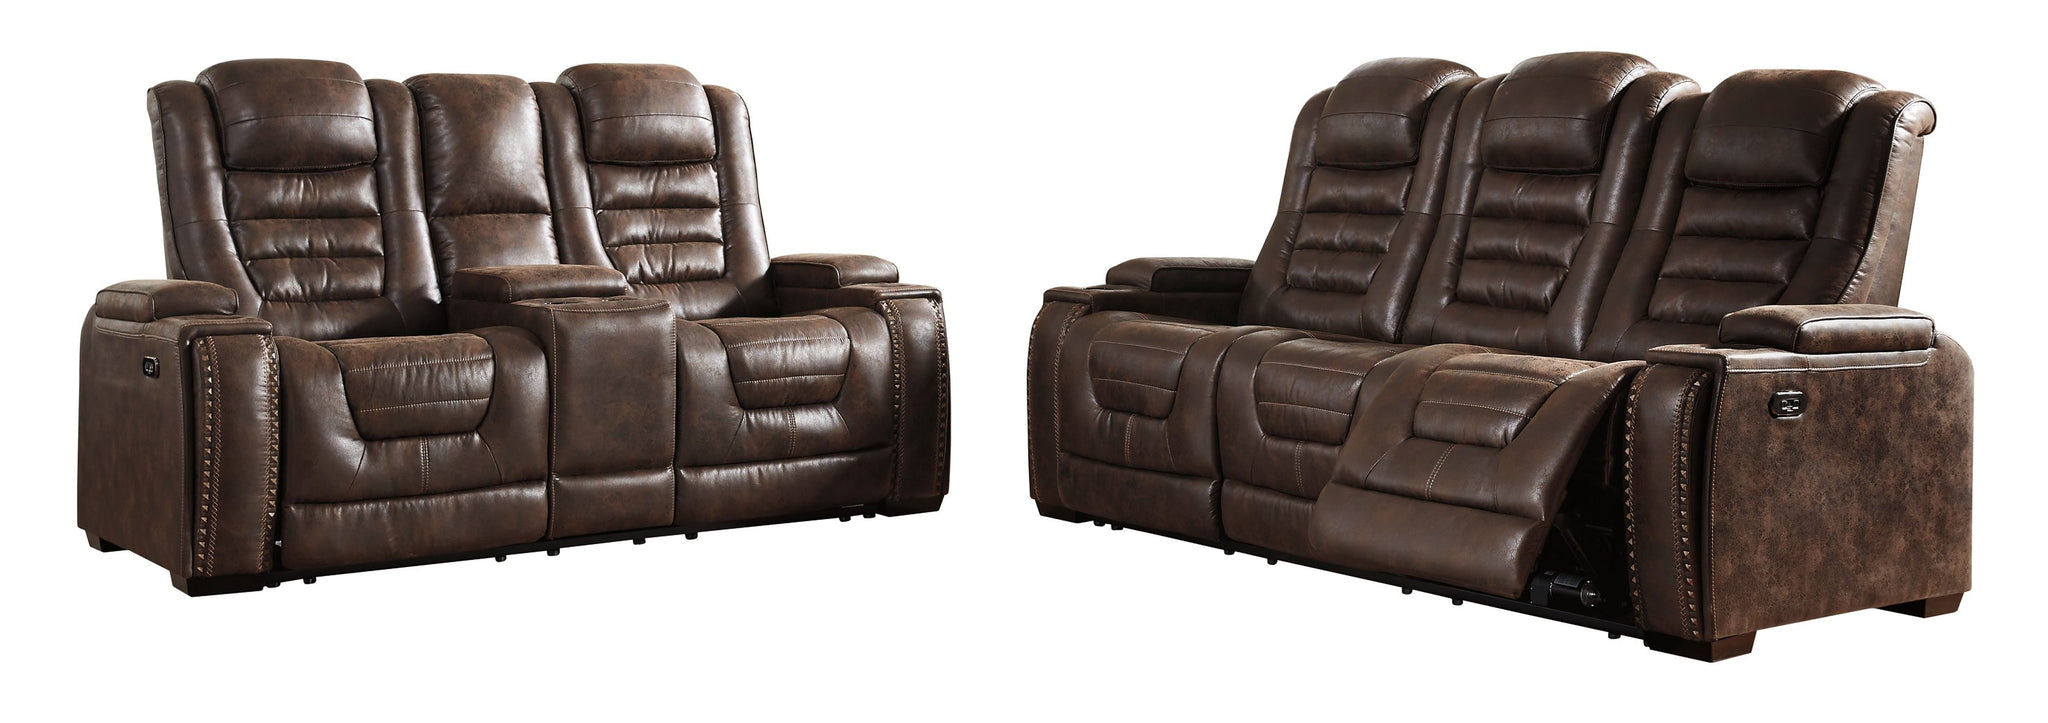 Game Zone Signature Design Sofa 2-Piece Upholstery Package